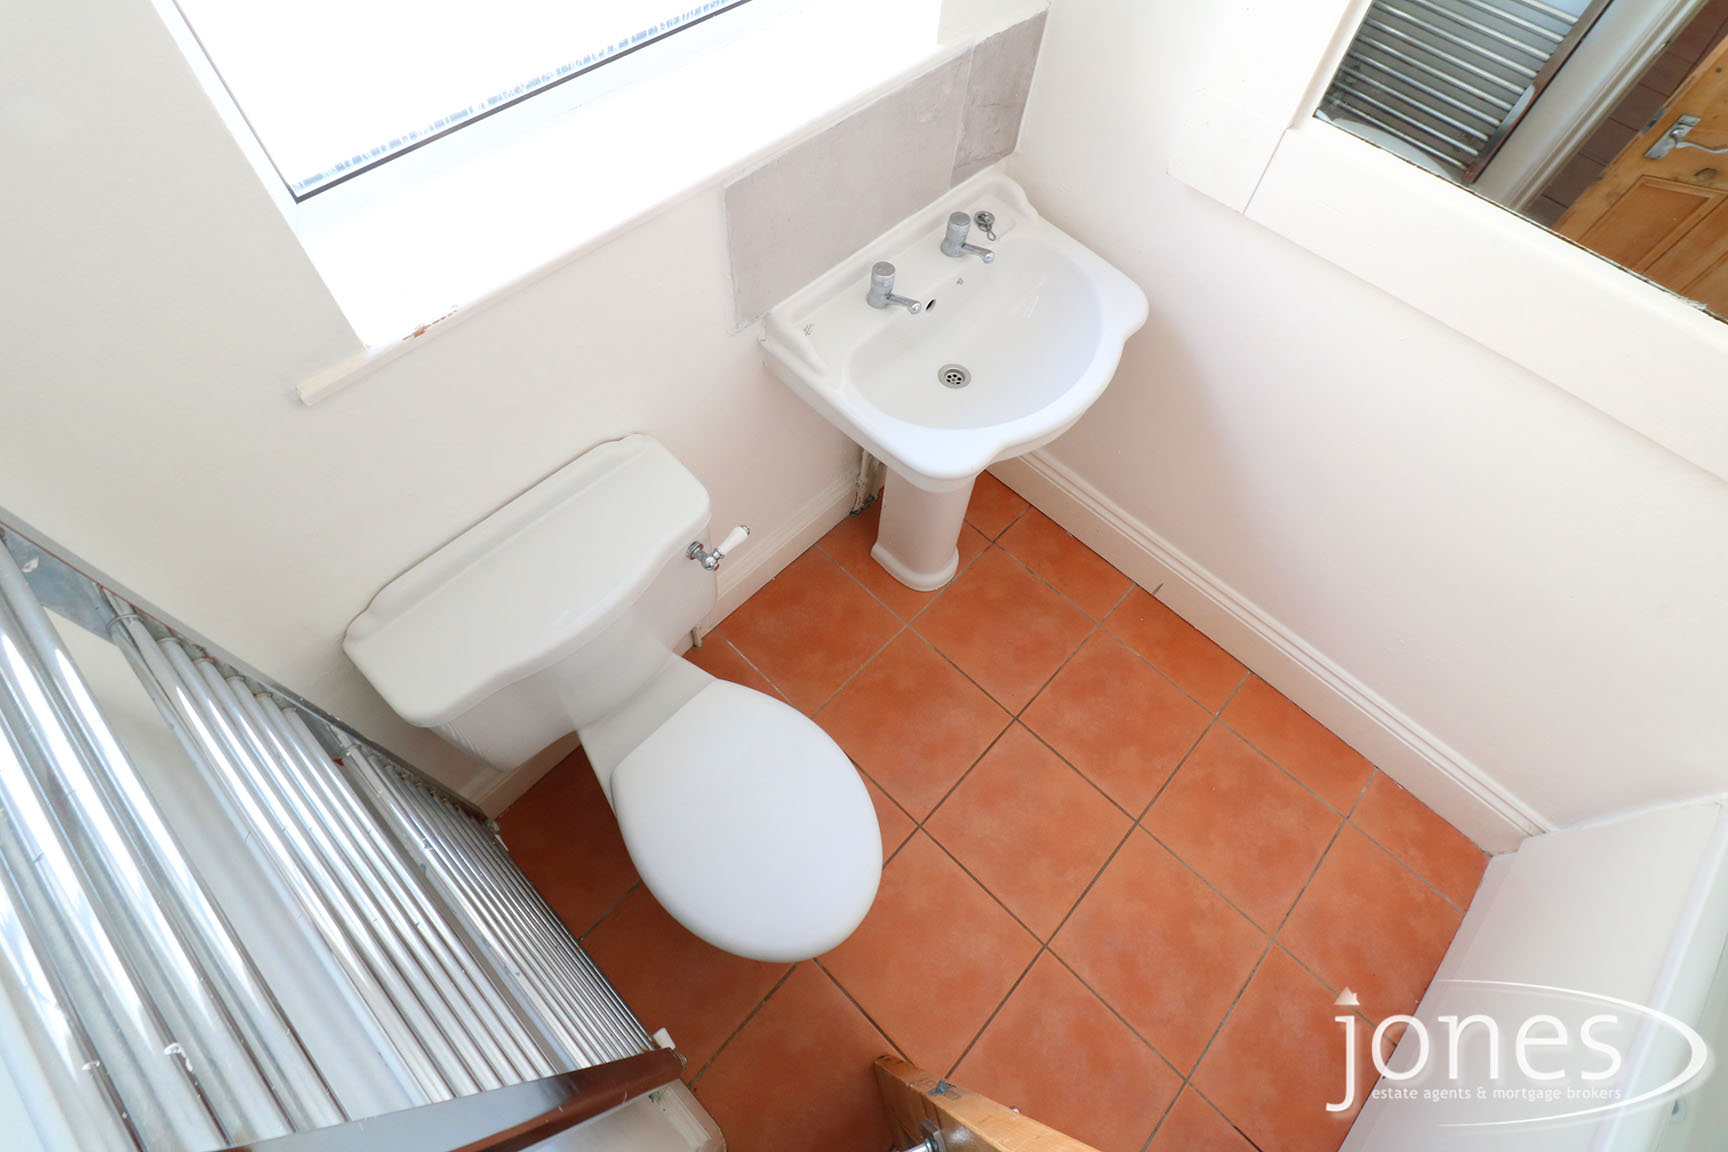 Home for Sale Let - Photo 07 Station Road Norton Stockton on Tees TS20 1PE